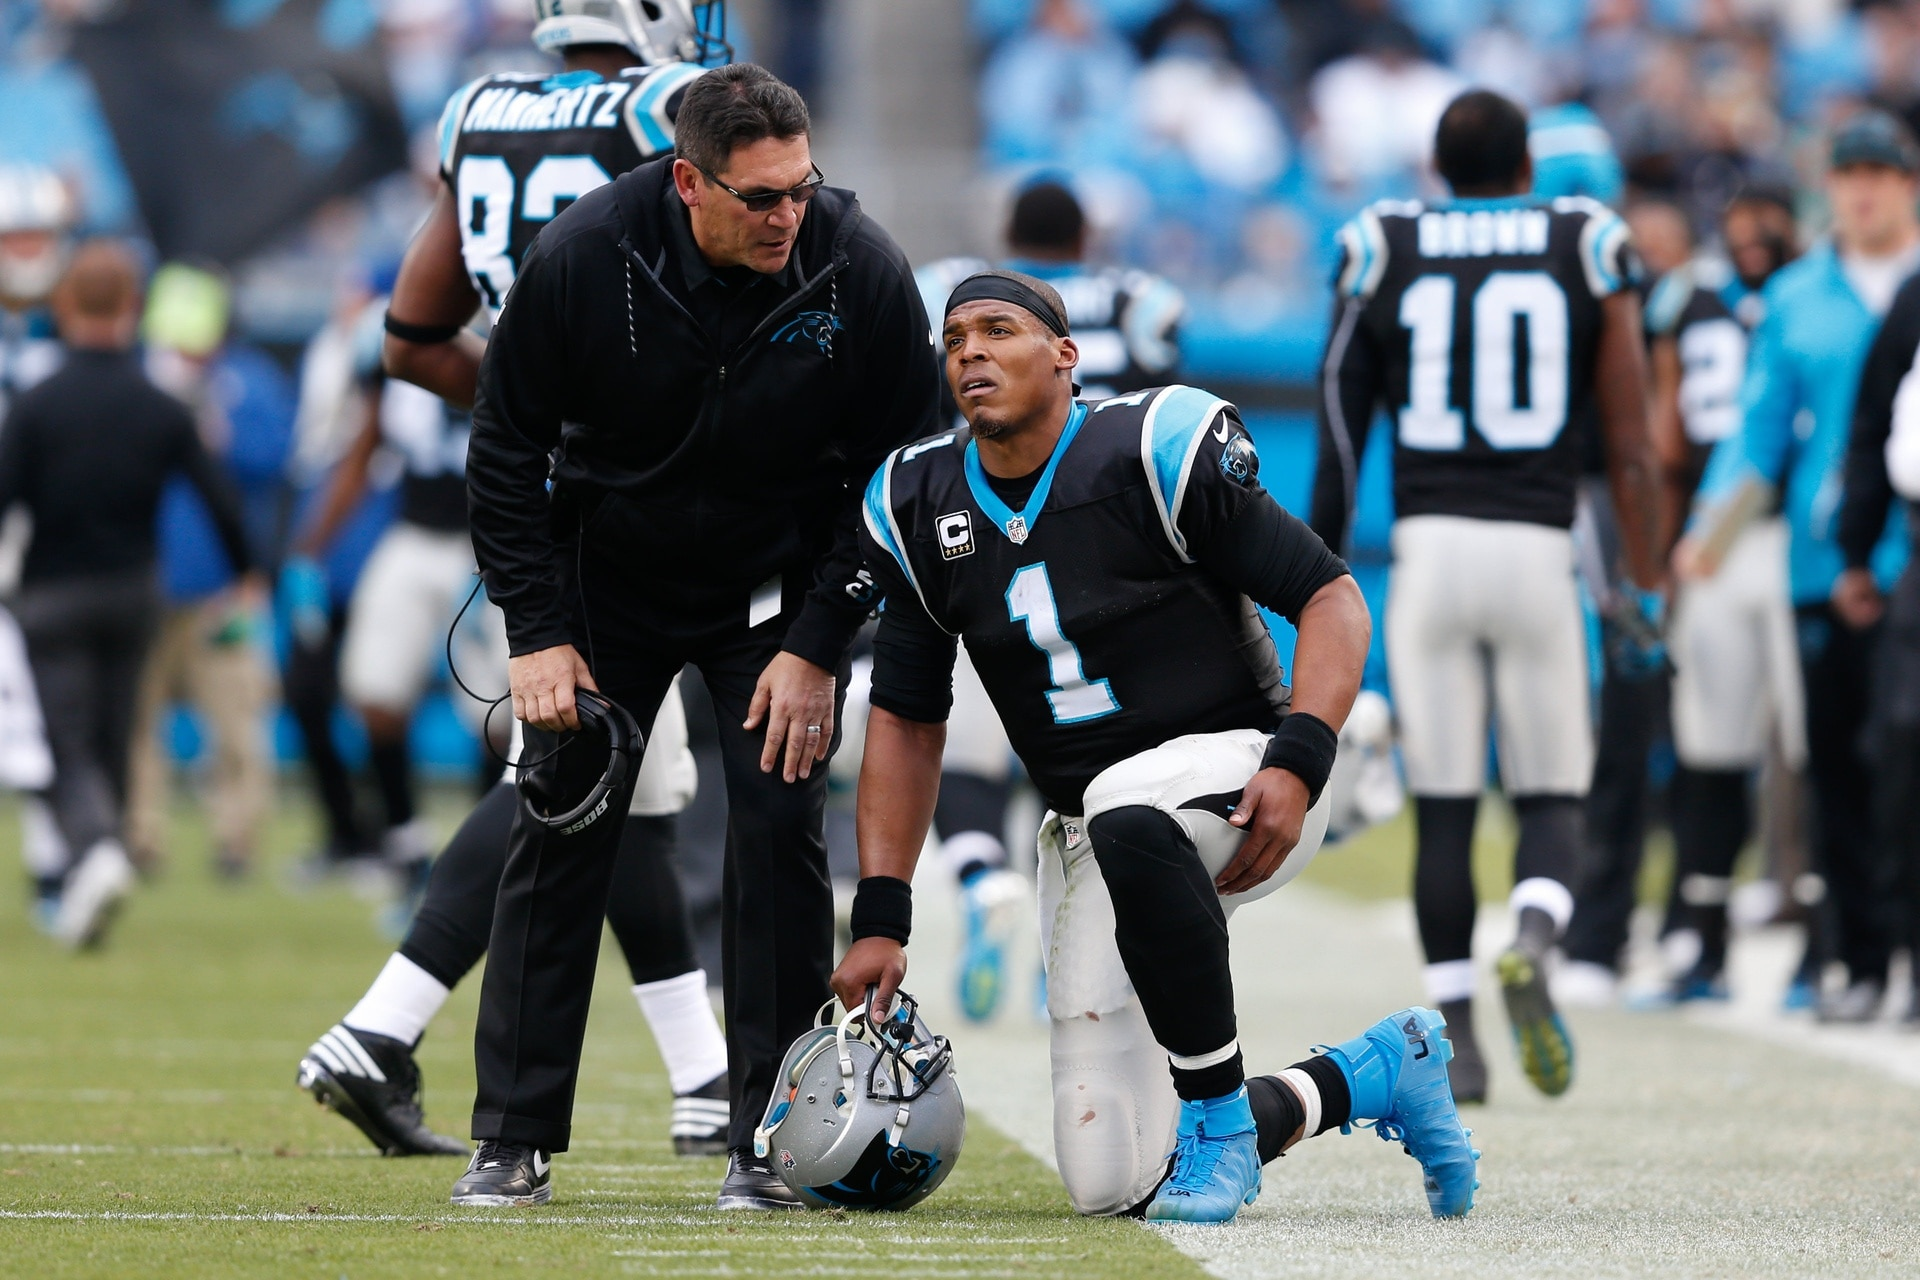 It's about time the Carolina Panthers get Cam Newton pass protection.